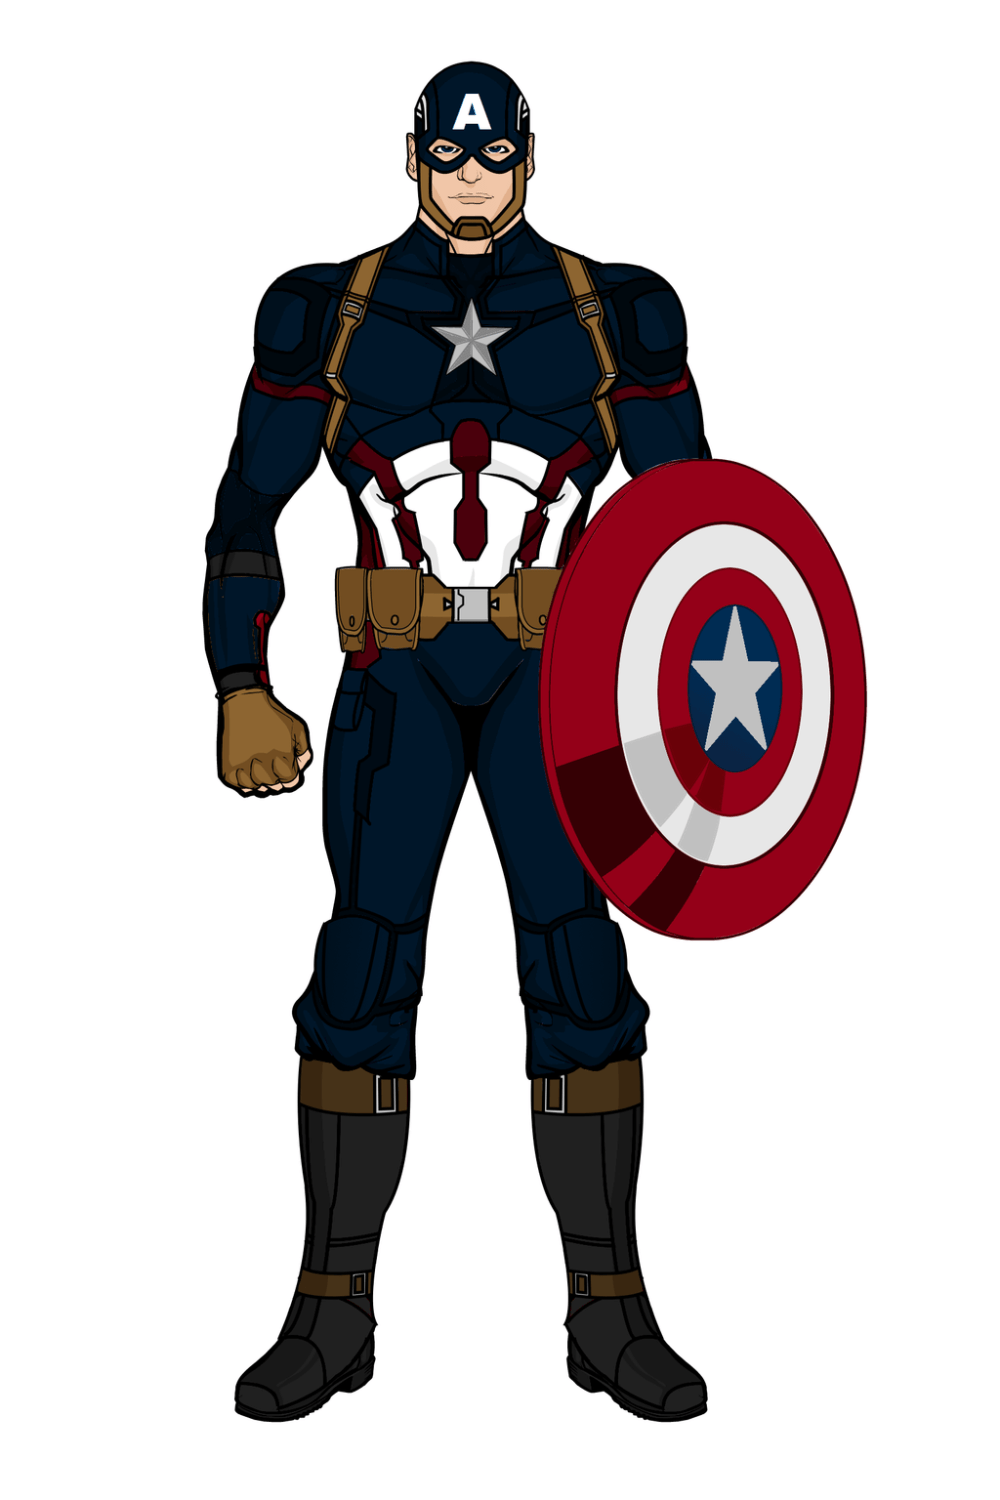 medium resolution of 1024x1536 captain america mark iii civil war heromachine by aniartluke82